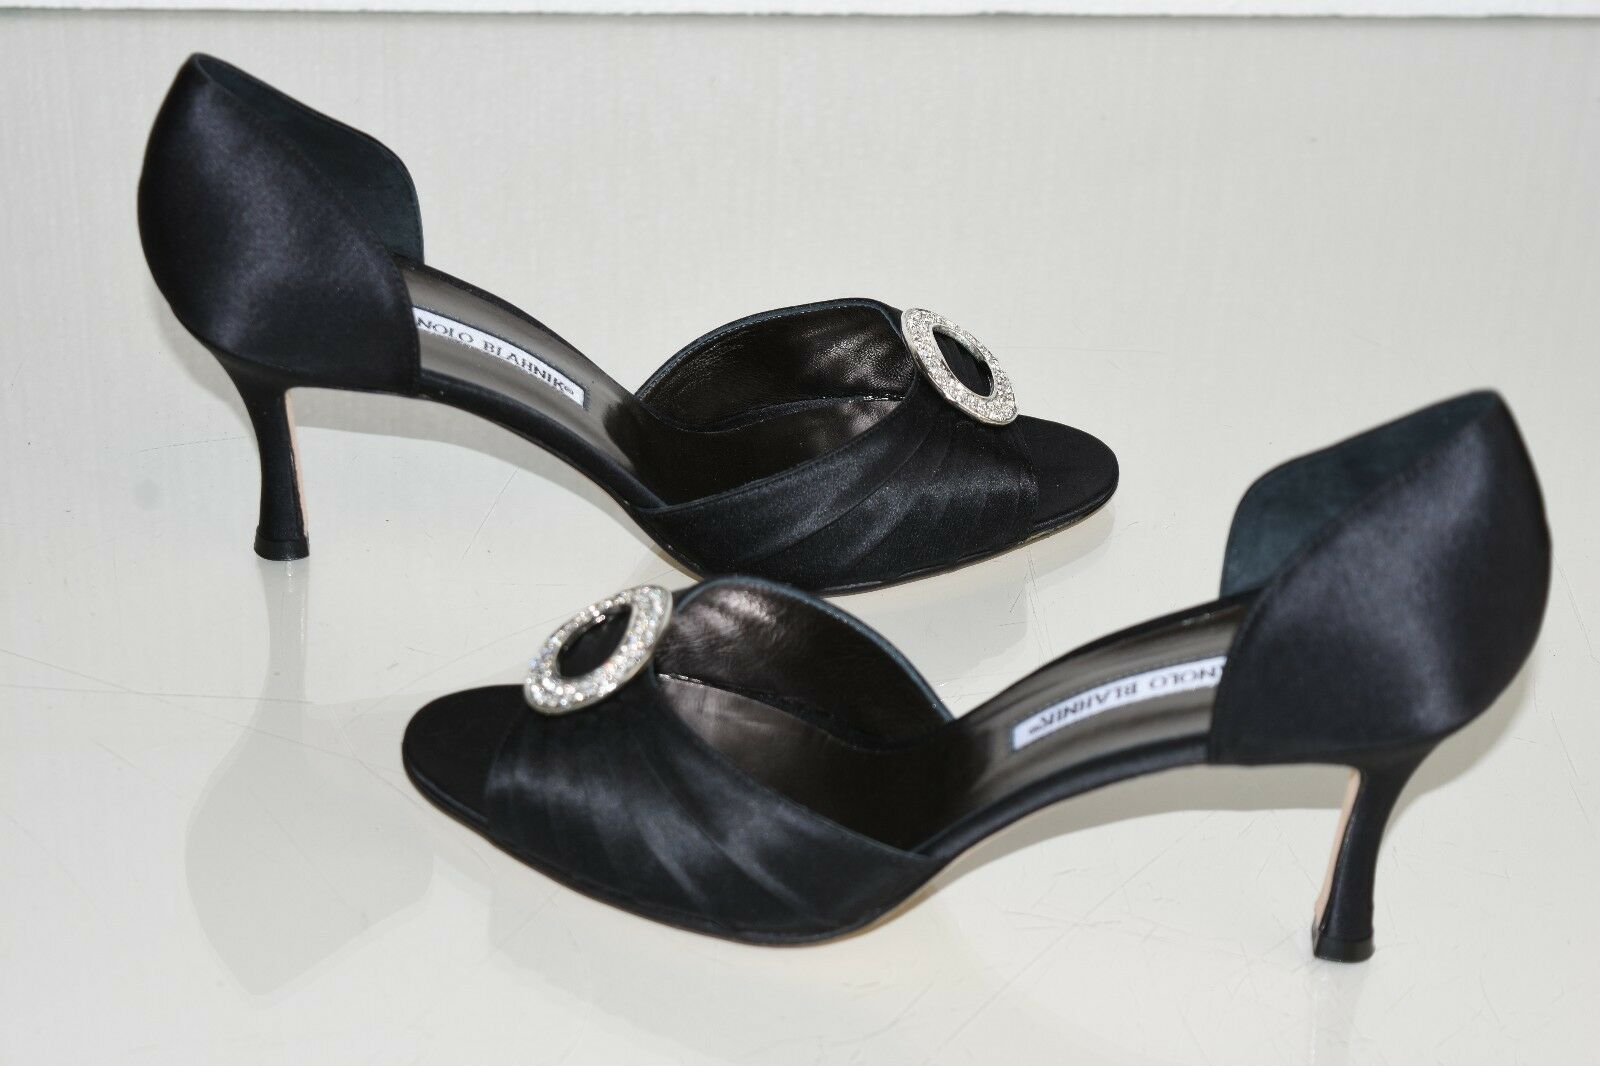 785 New MANOLO BLAHNIK SEDARABY 90 Black Satin Silver Jeweled  SHOES 41